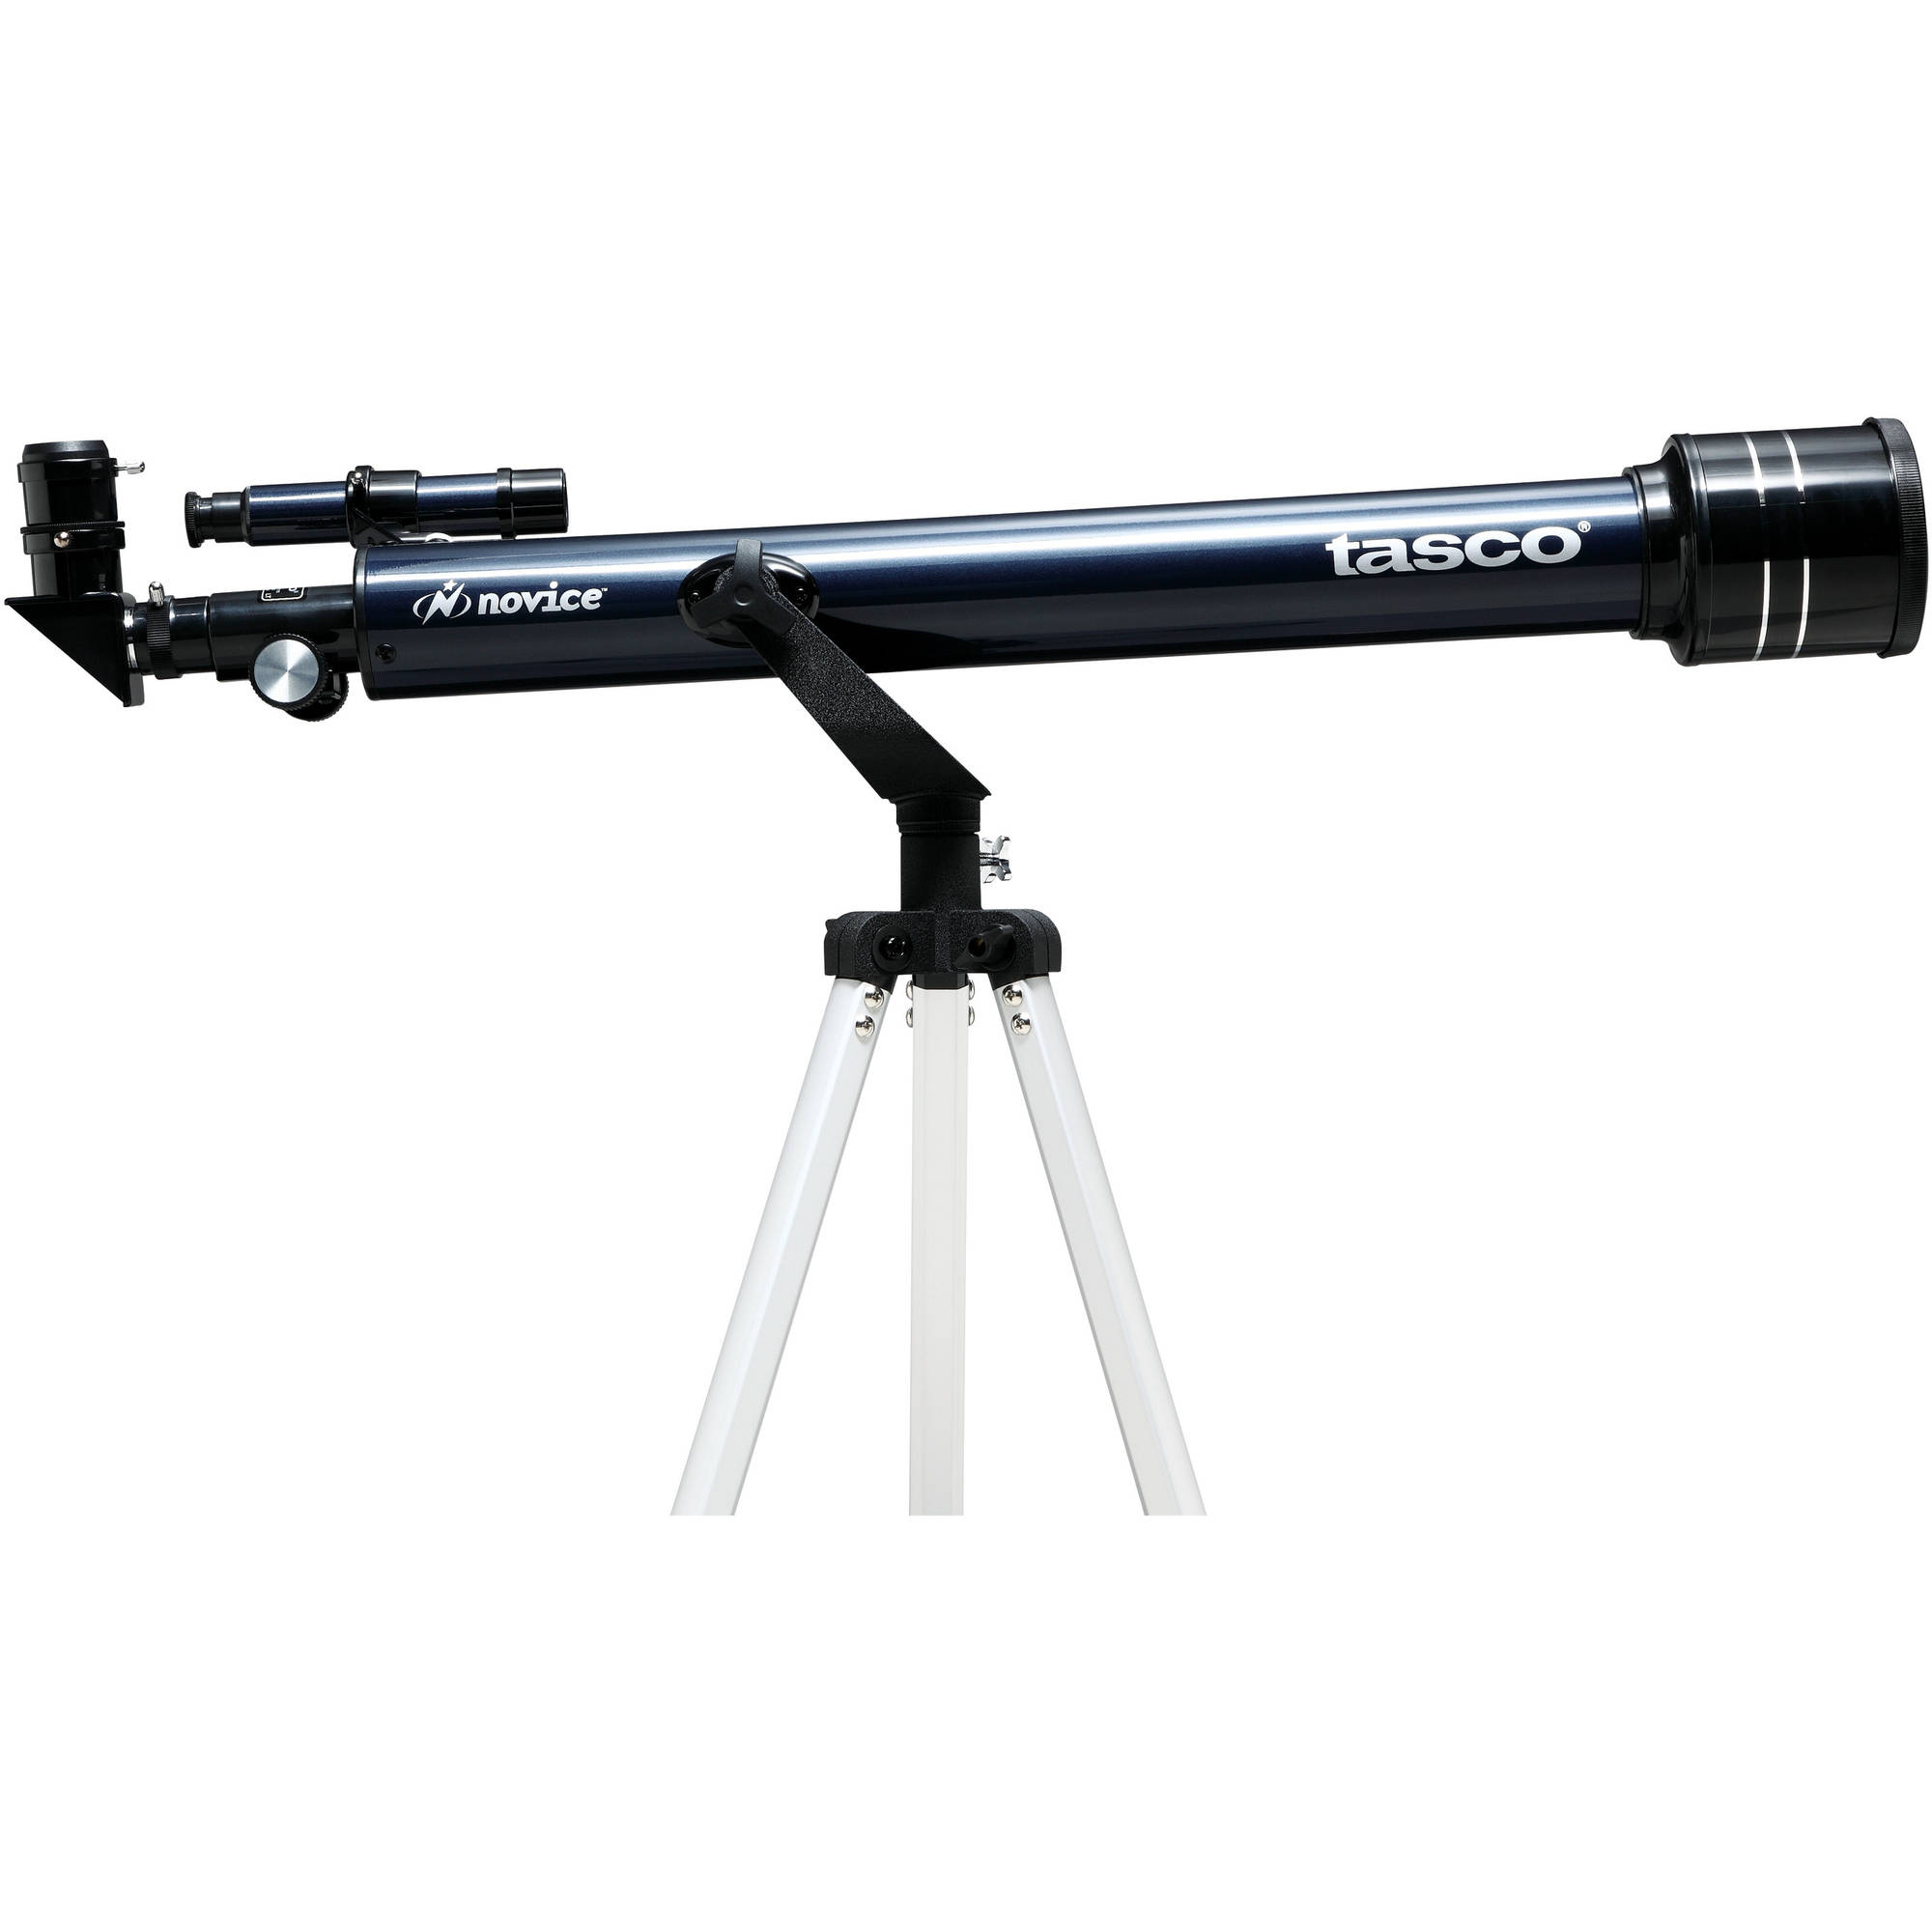 Tasco Novice 60x700MM Refractor Telescope by Tasco